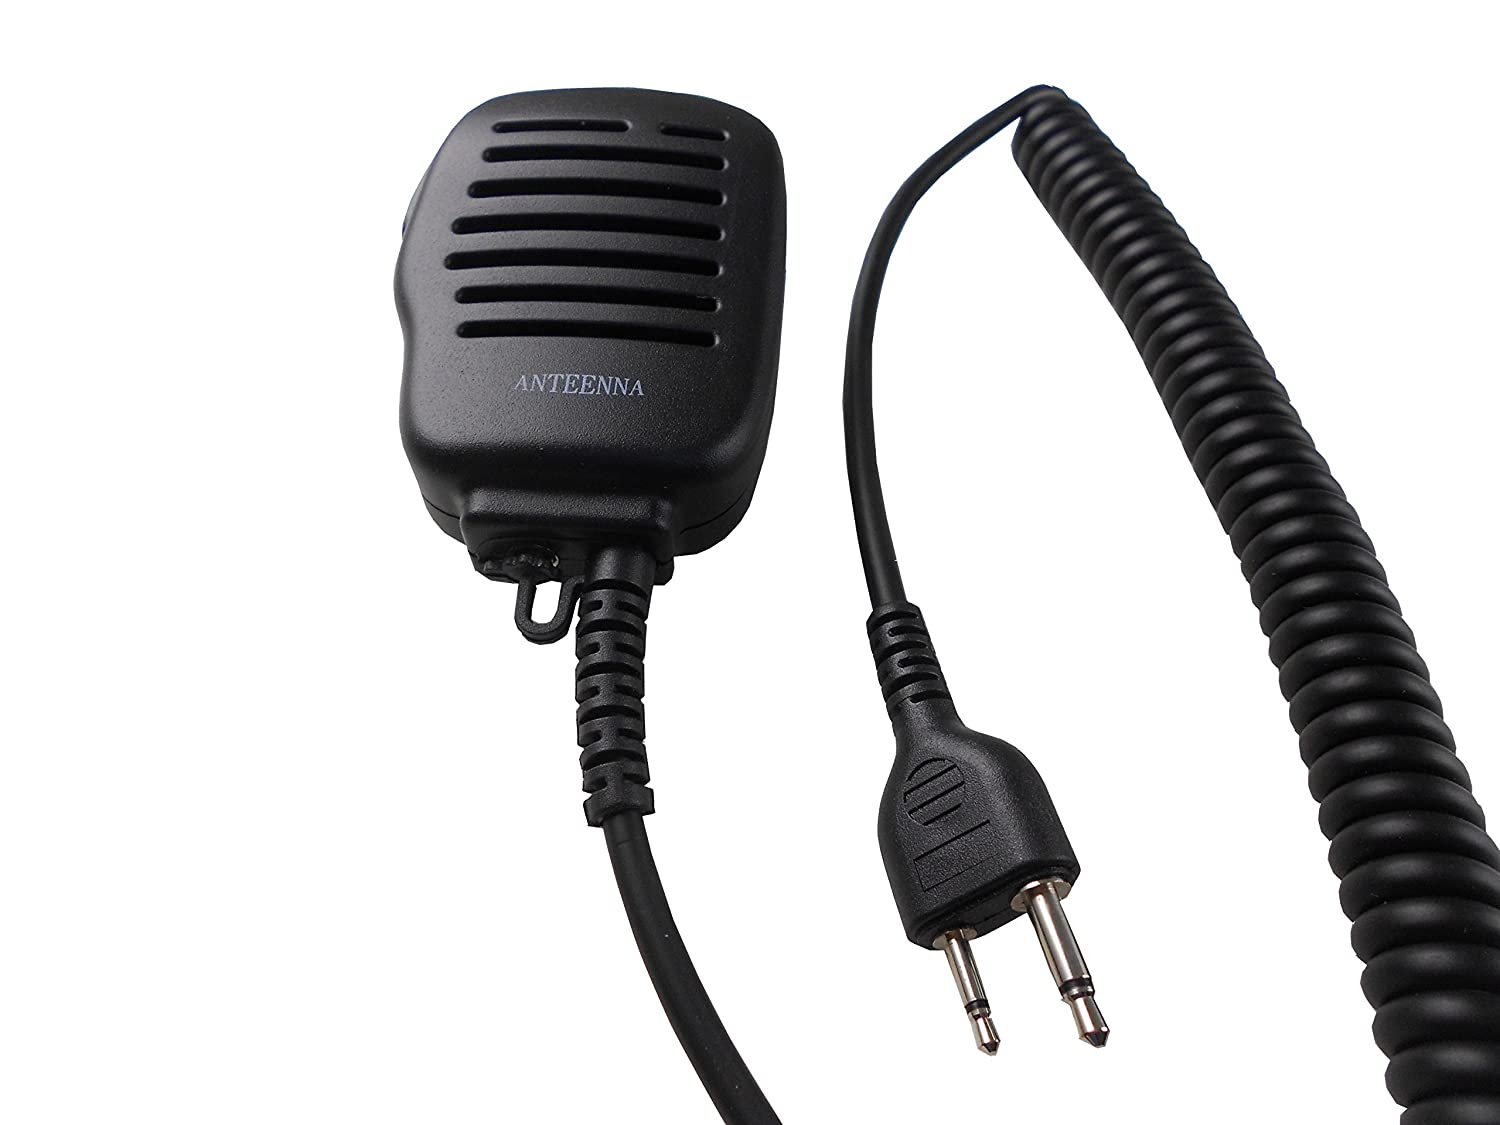 Chiko Communication Only Listen Anteenna TW-52SS Remot Speaker Mic With Metal Clip For Two Way Radio For Icom Maxon Yaesu Vertex Radio 2 Pin Heavy Duty Speaker Microphone 1 Pc Free For Ear Phone Only